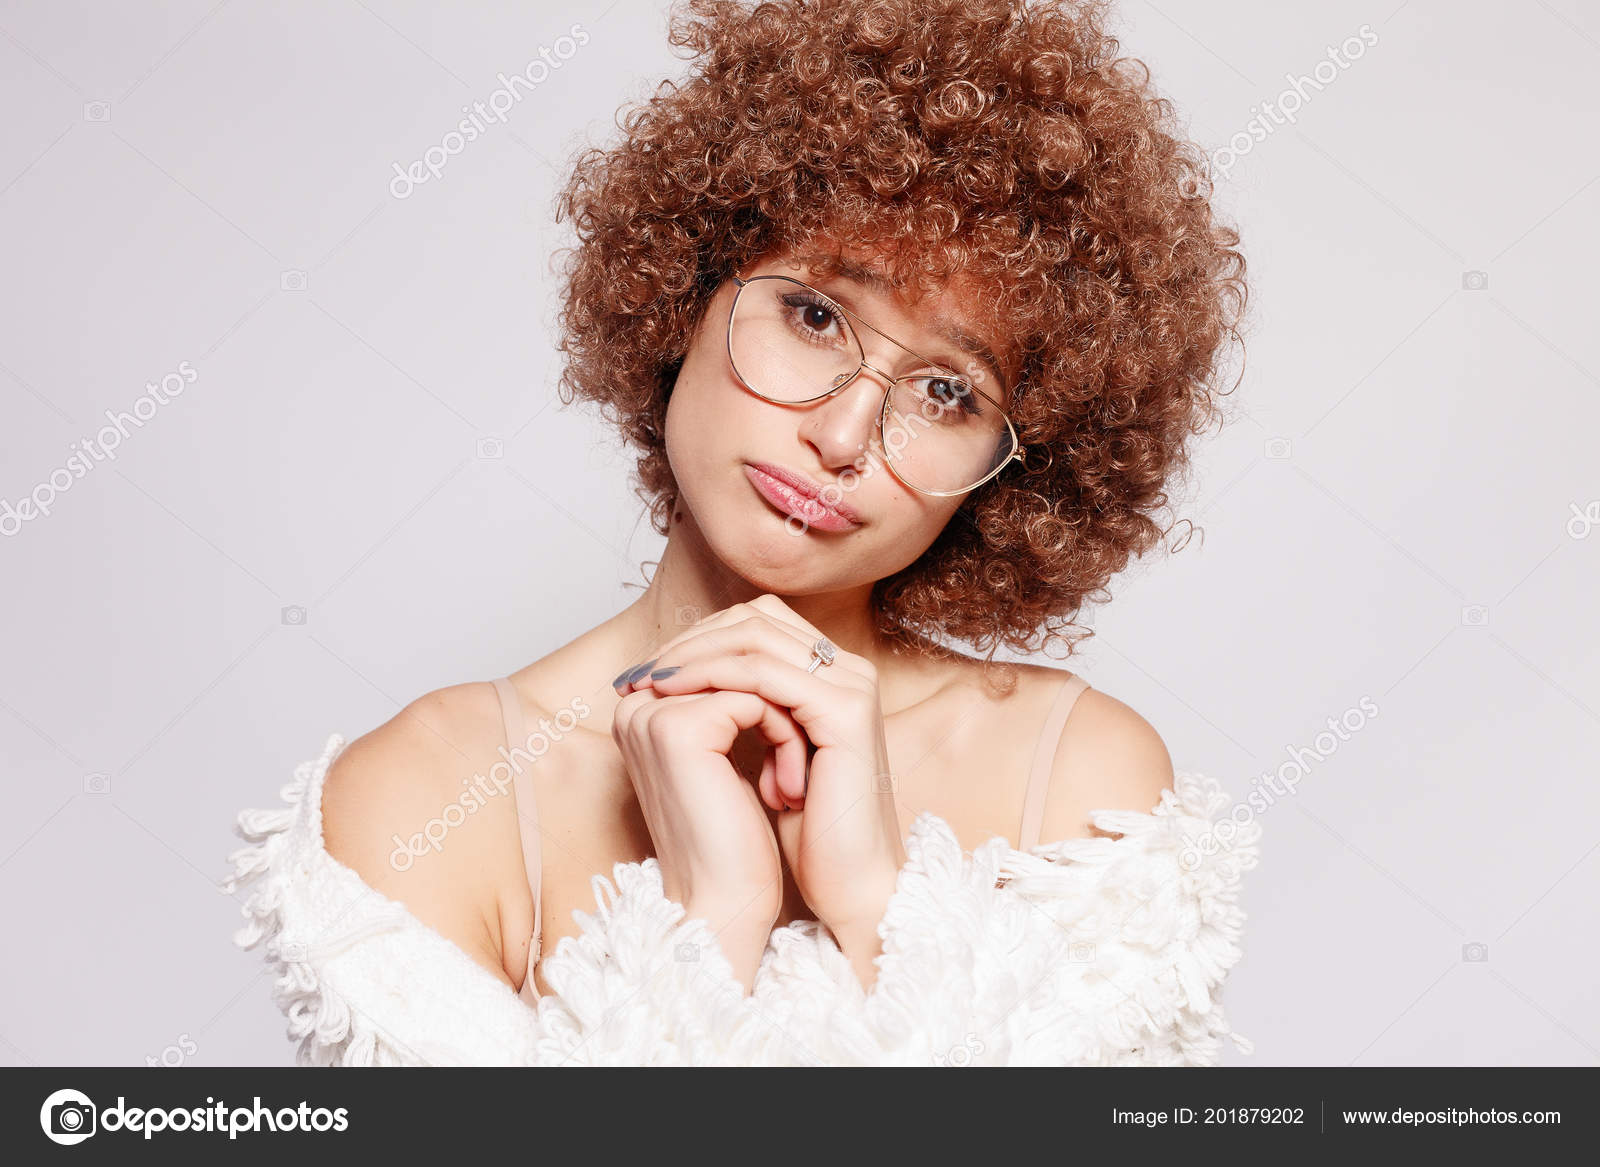 b40ce2fa6182 Portrait smiling young black woman portrait beautiful young woman jpg  1600x1167 Black girl red glasses